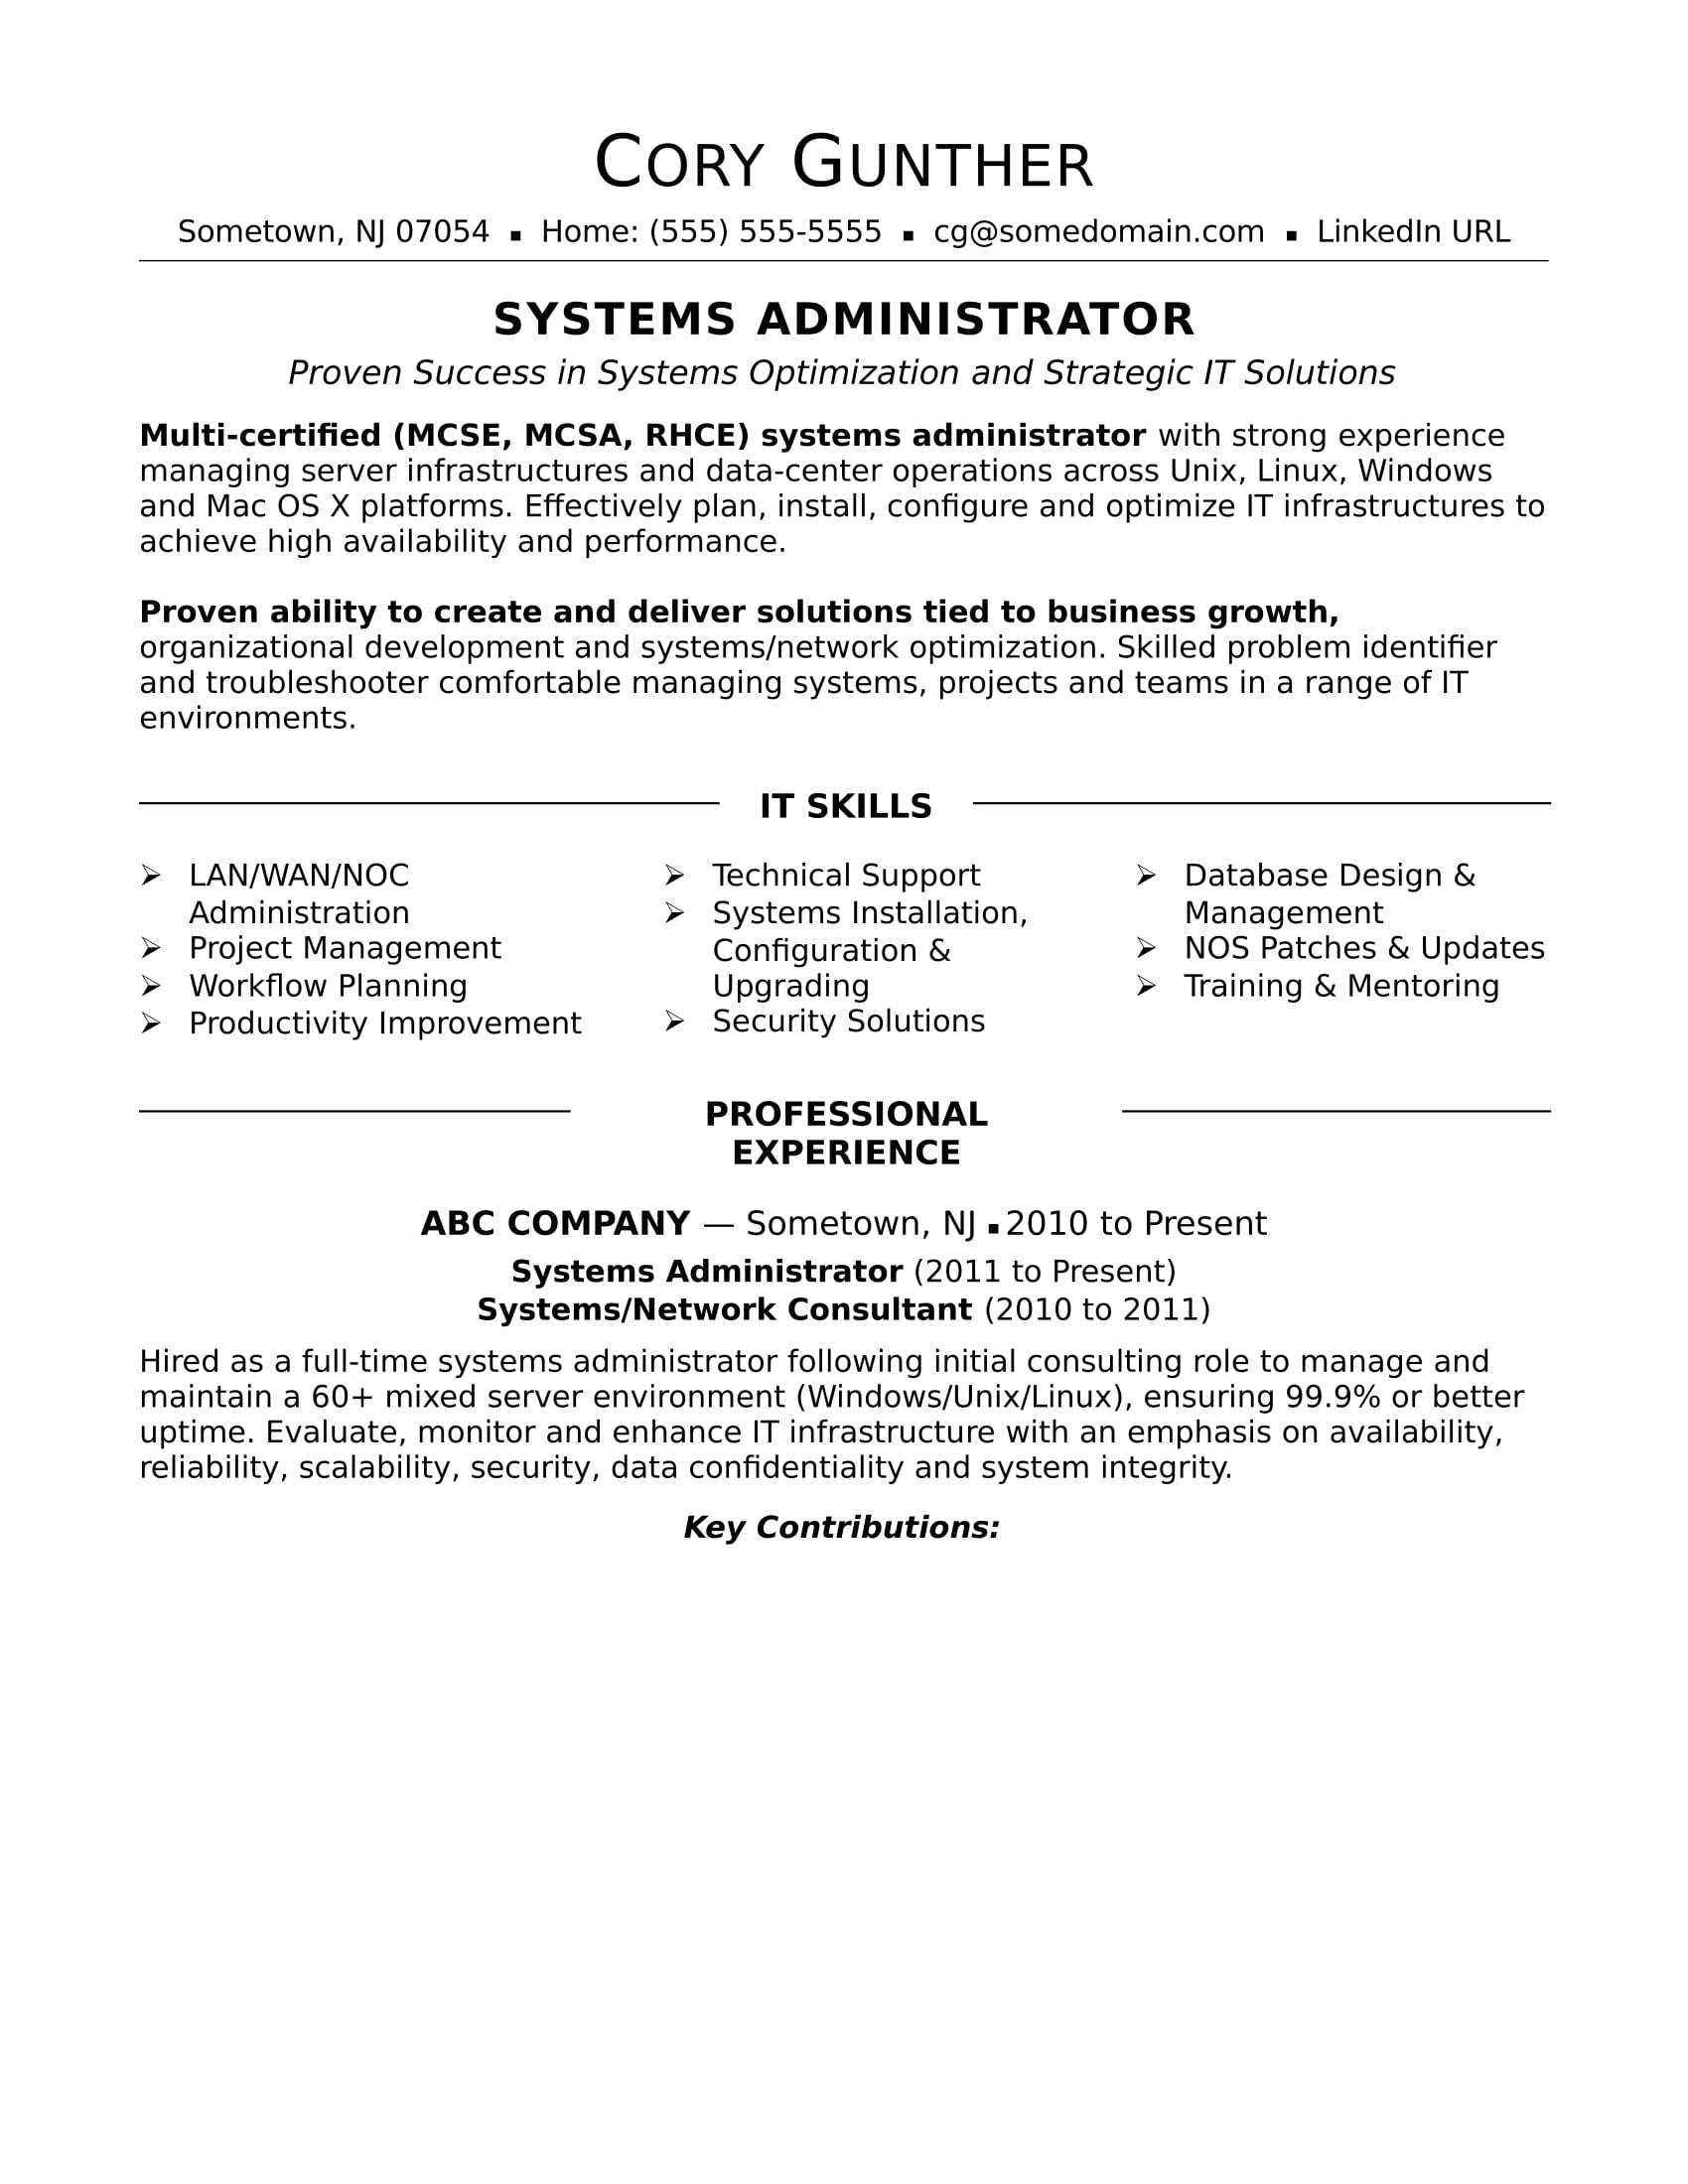 sample resume for an experienced systems administrator monster entry level nursing home Resume Entry Level Nursing Home Administrator Resume